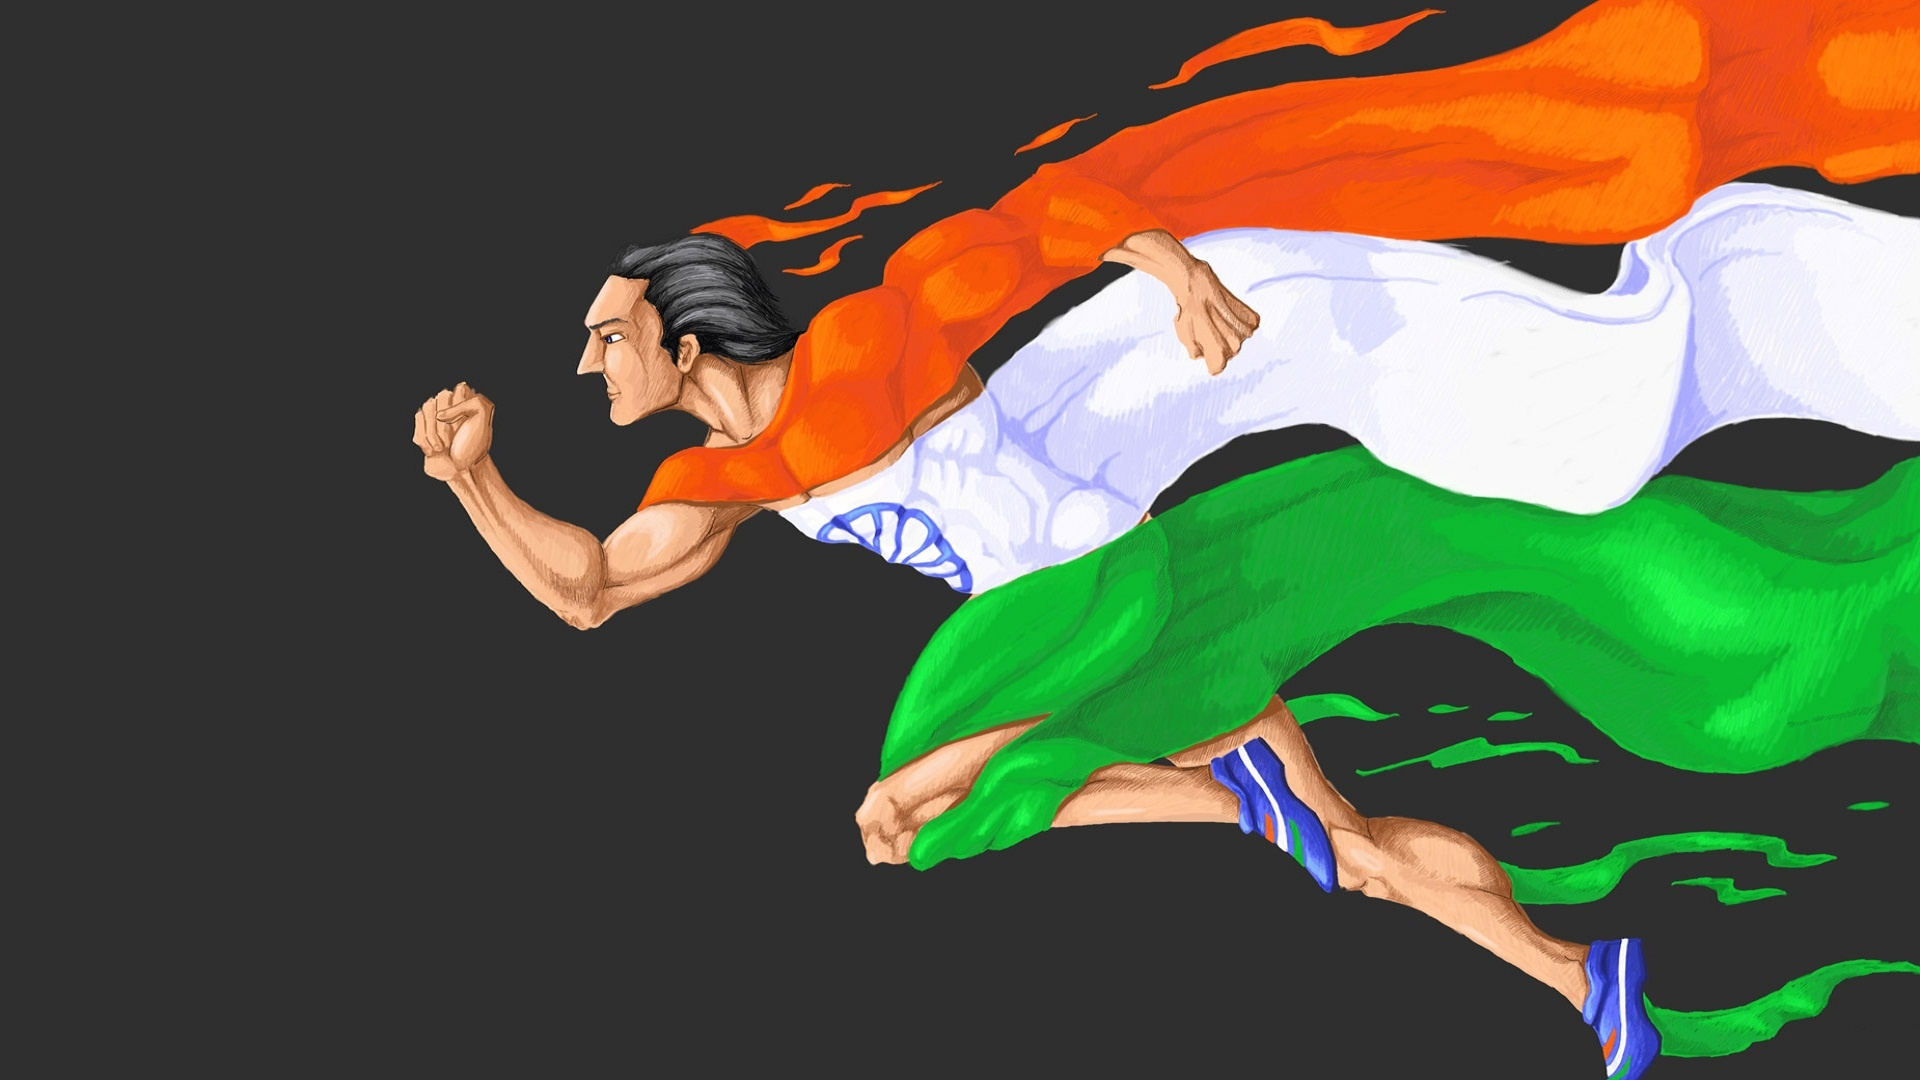 Free Happy Republic Day 2018 Hd Wallpapers Images Pics And Photo